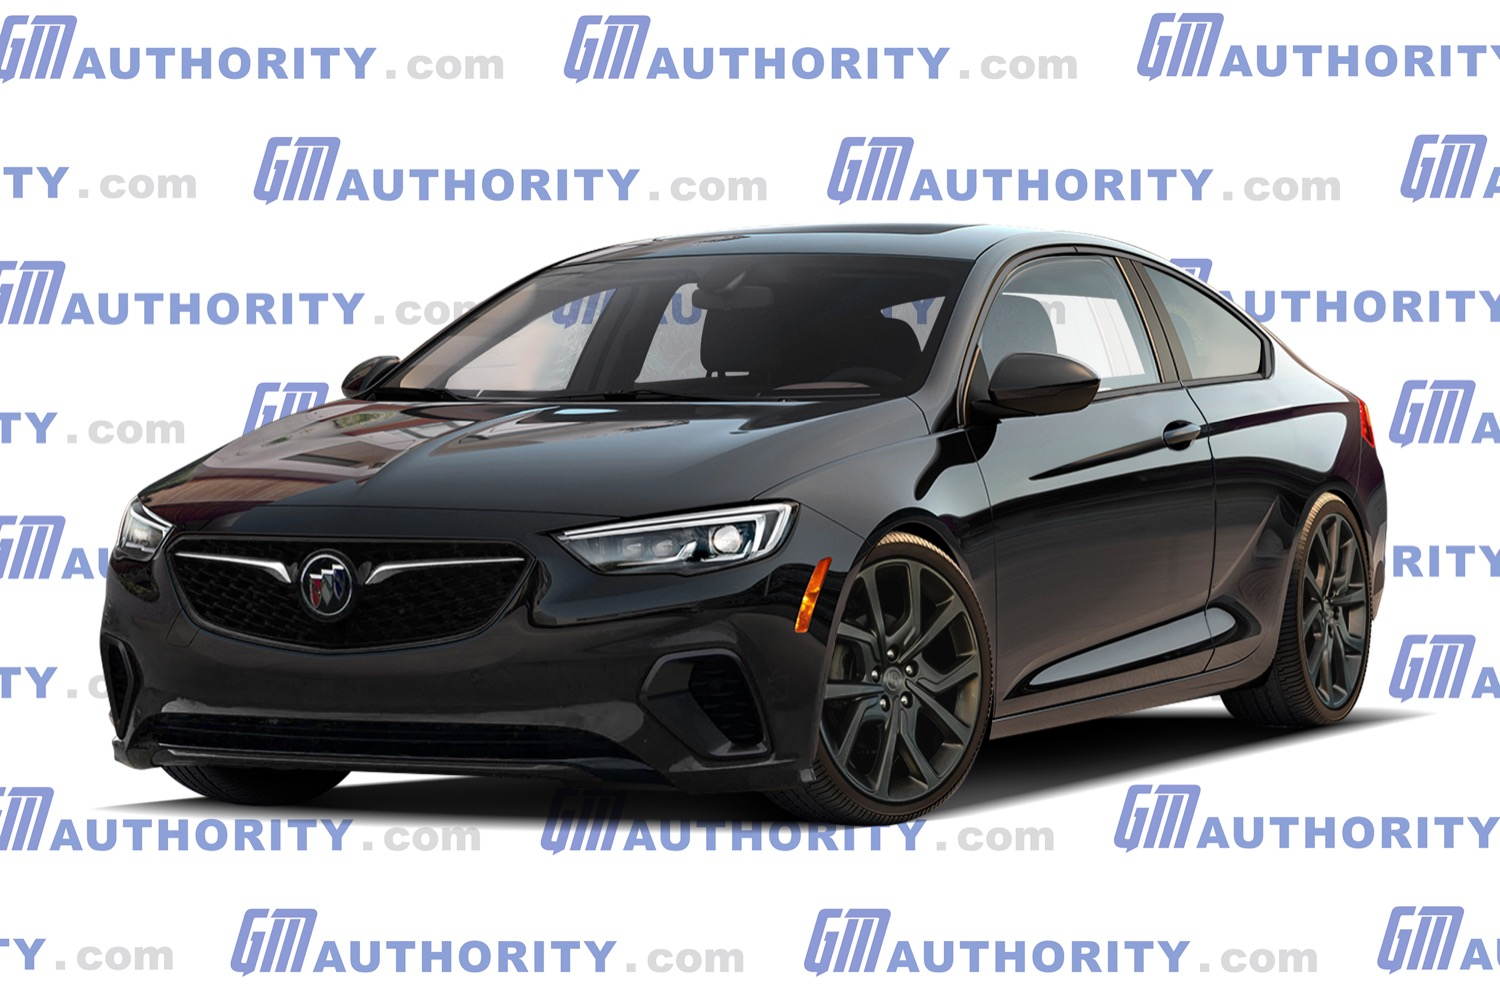 Modern Buick Regal Gnx Rendered | Gm Authority Is The 2022 Buick Regal A Good Car